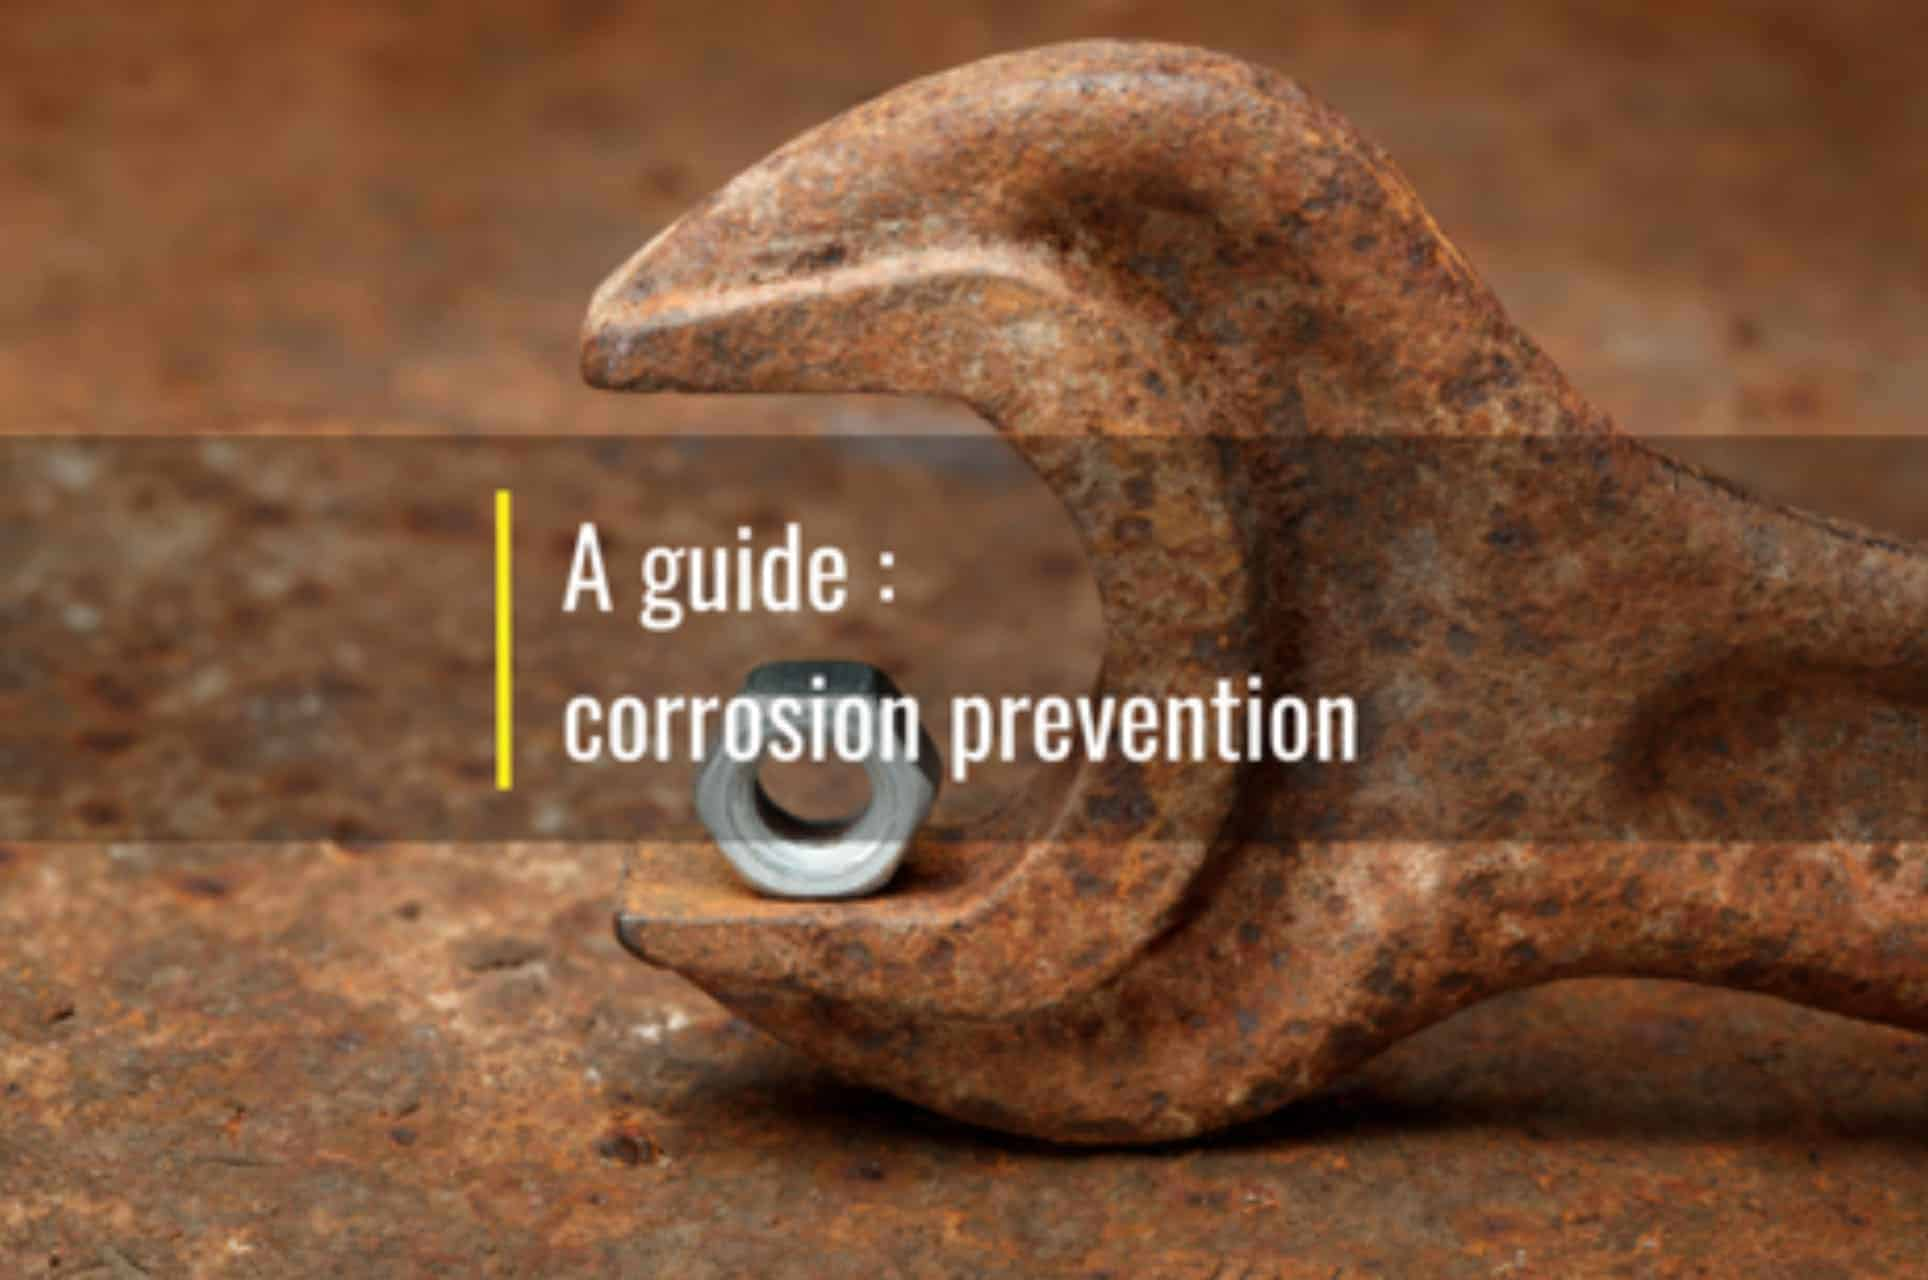 a guide to corrosion prevention